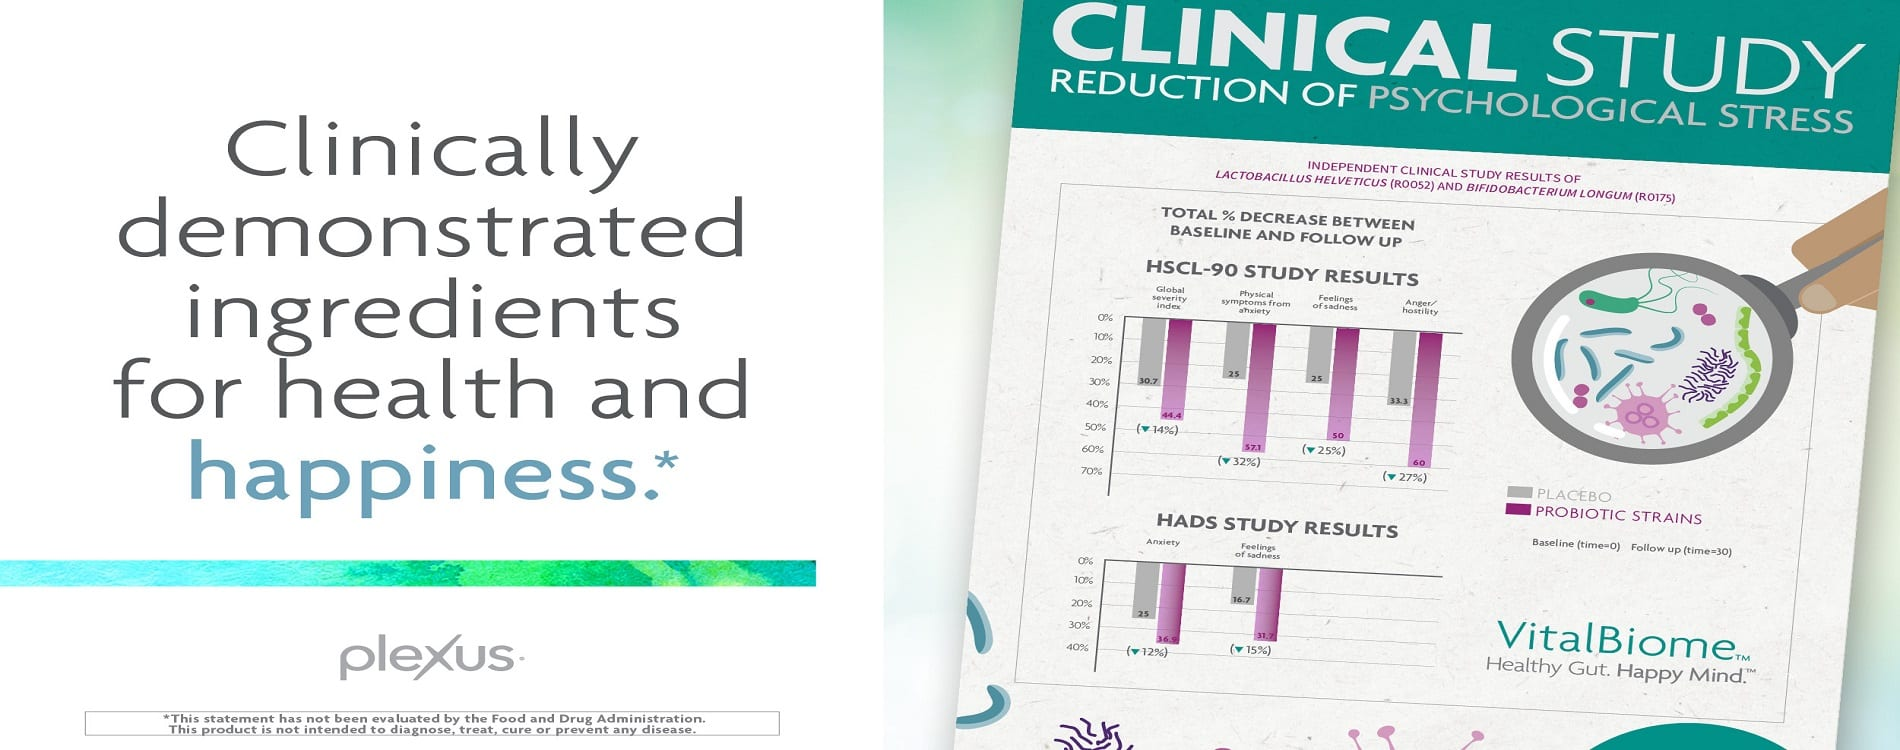 plexus clinical study